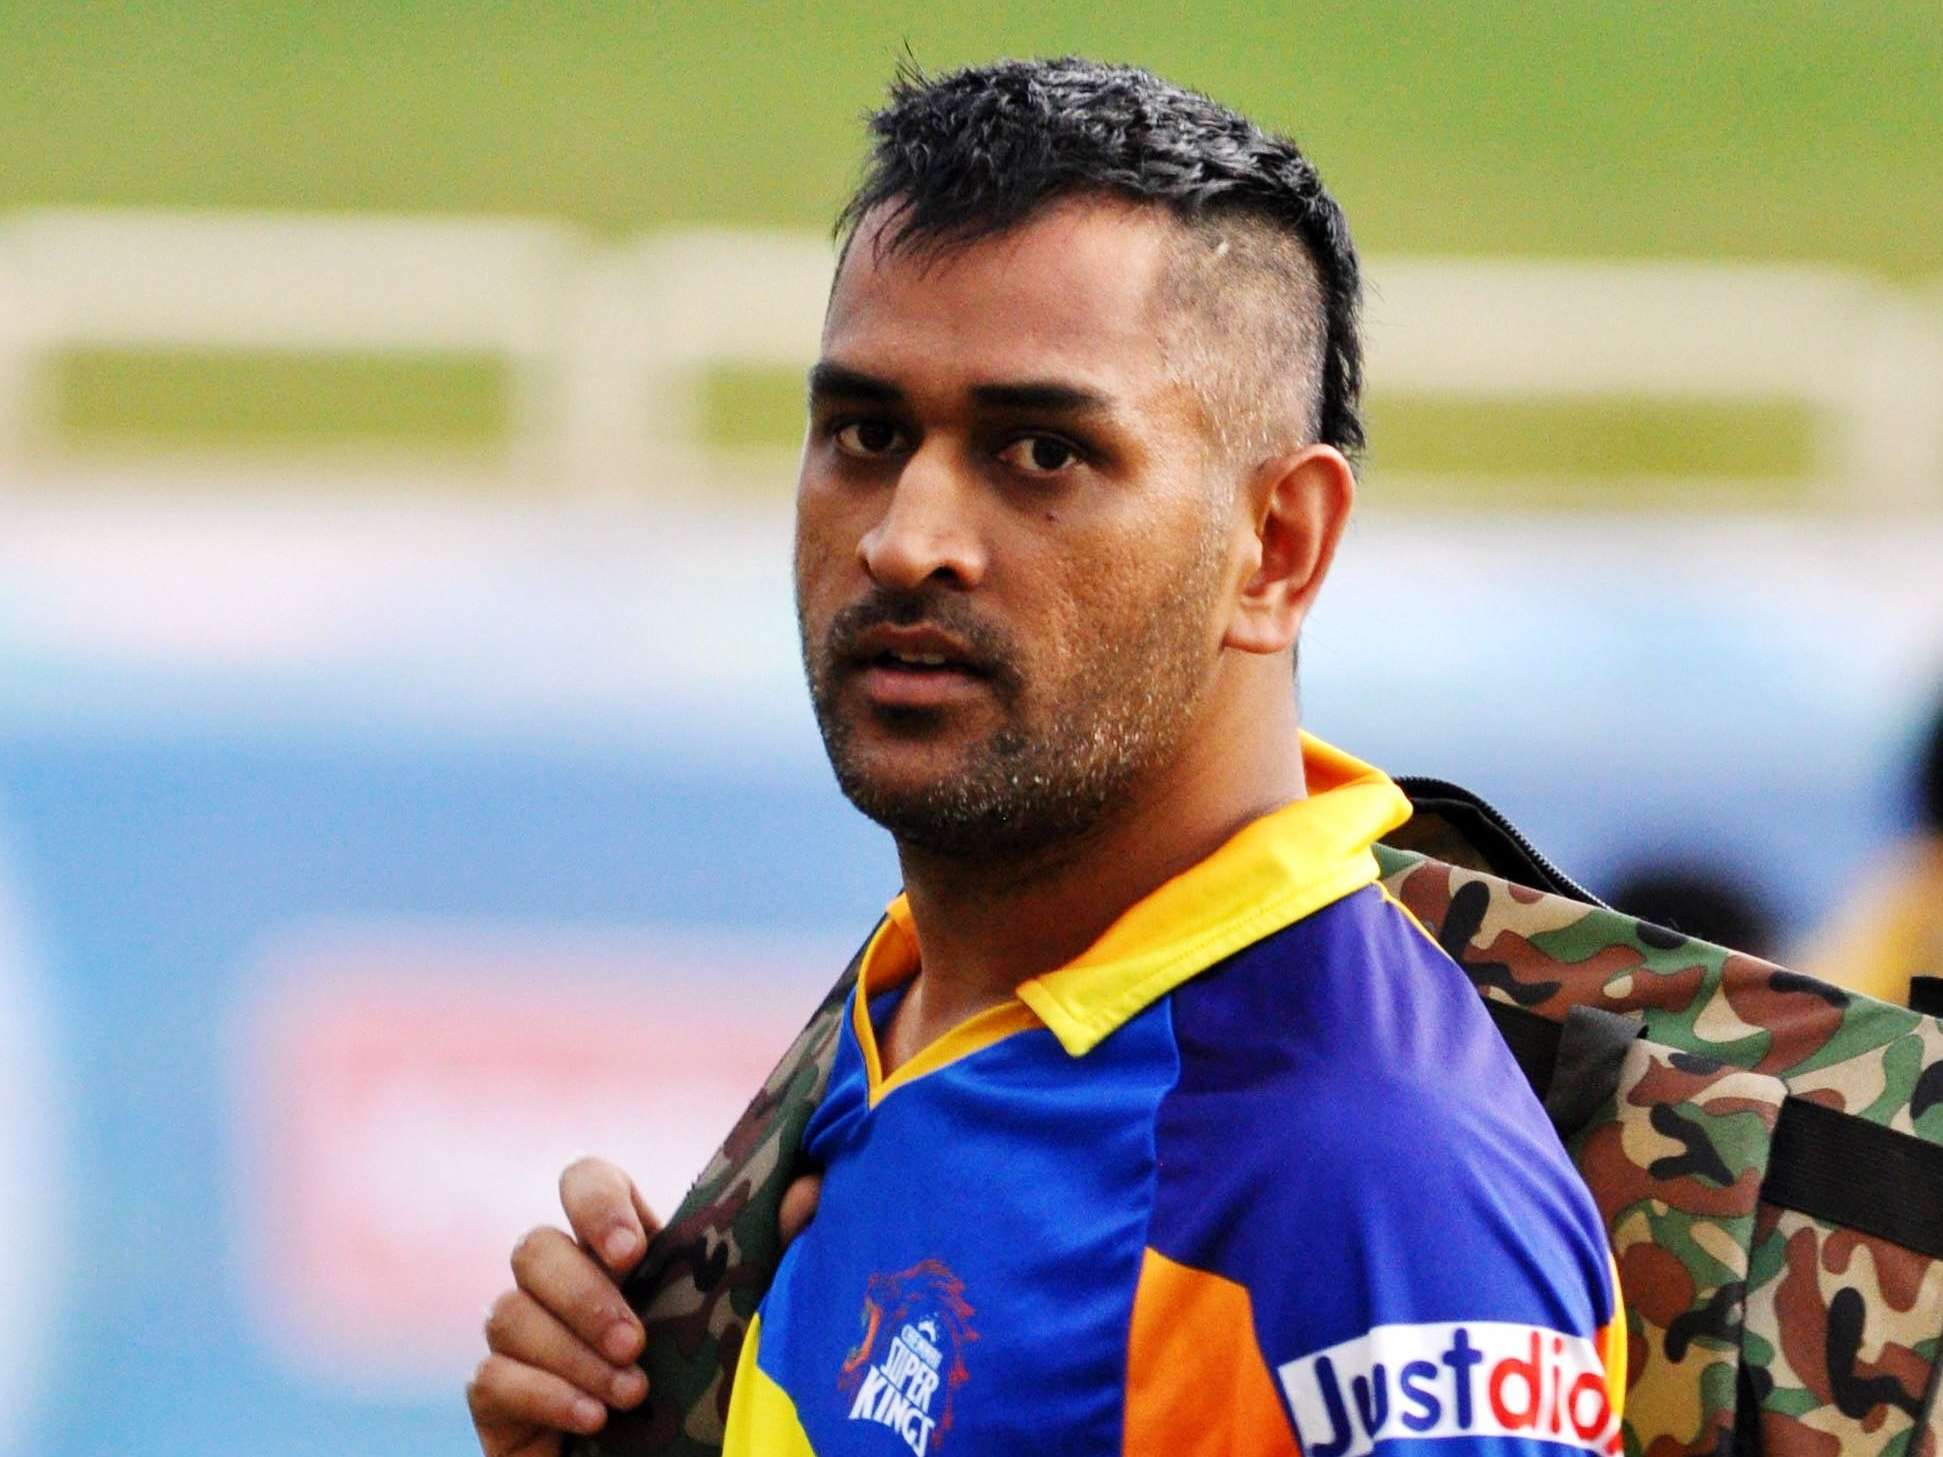 wonderful mahender singh dhoni hair style pose mobile background free desktop pictures hd